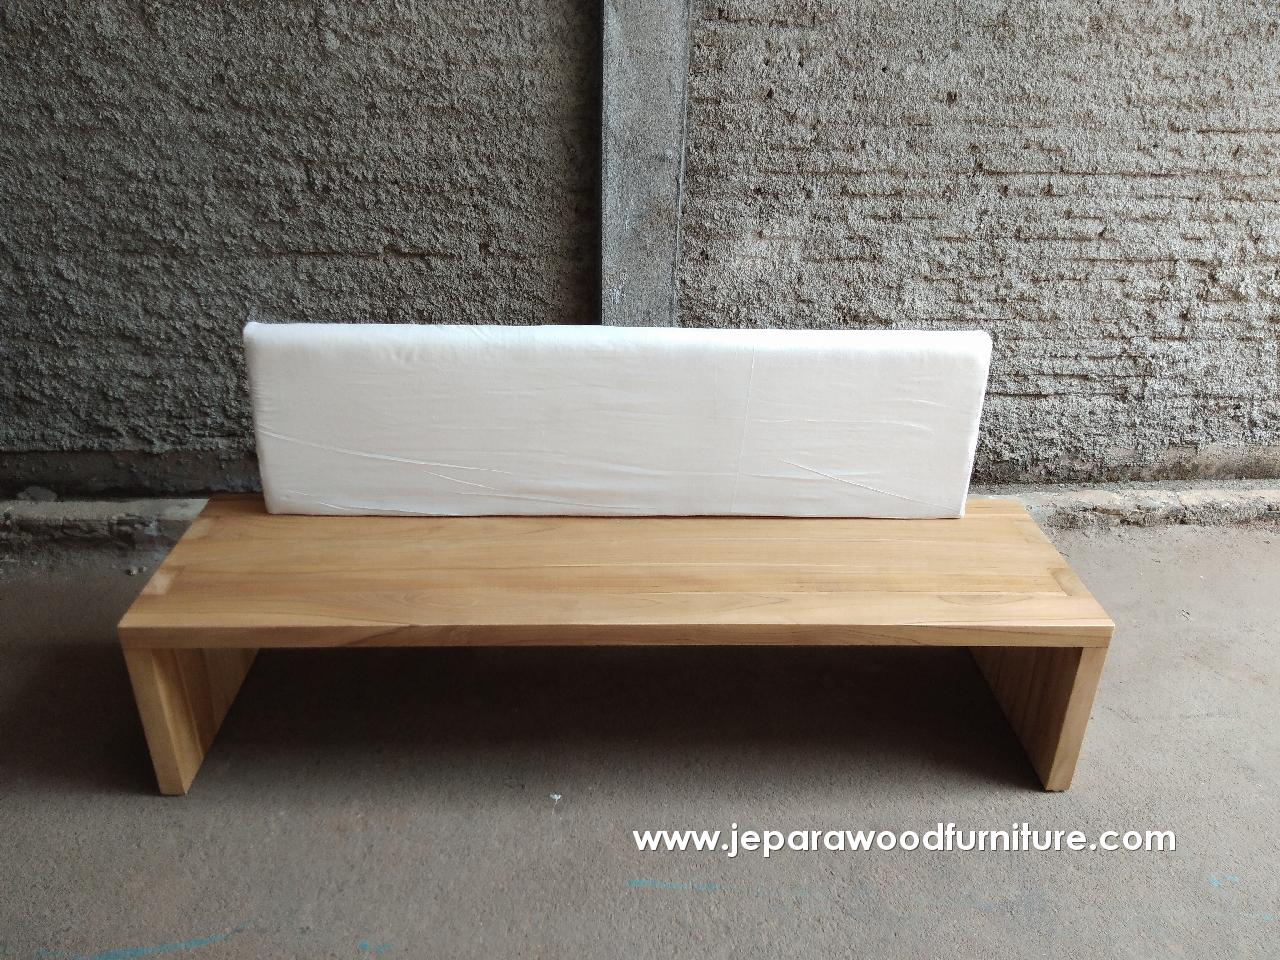 Teak Outdoor Seater